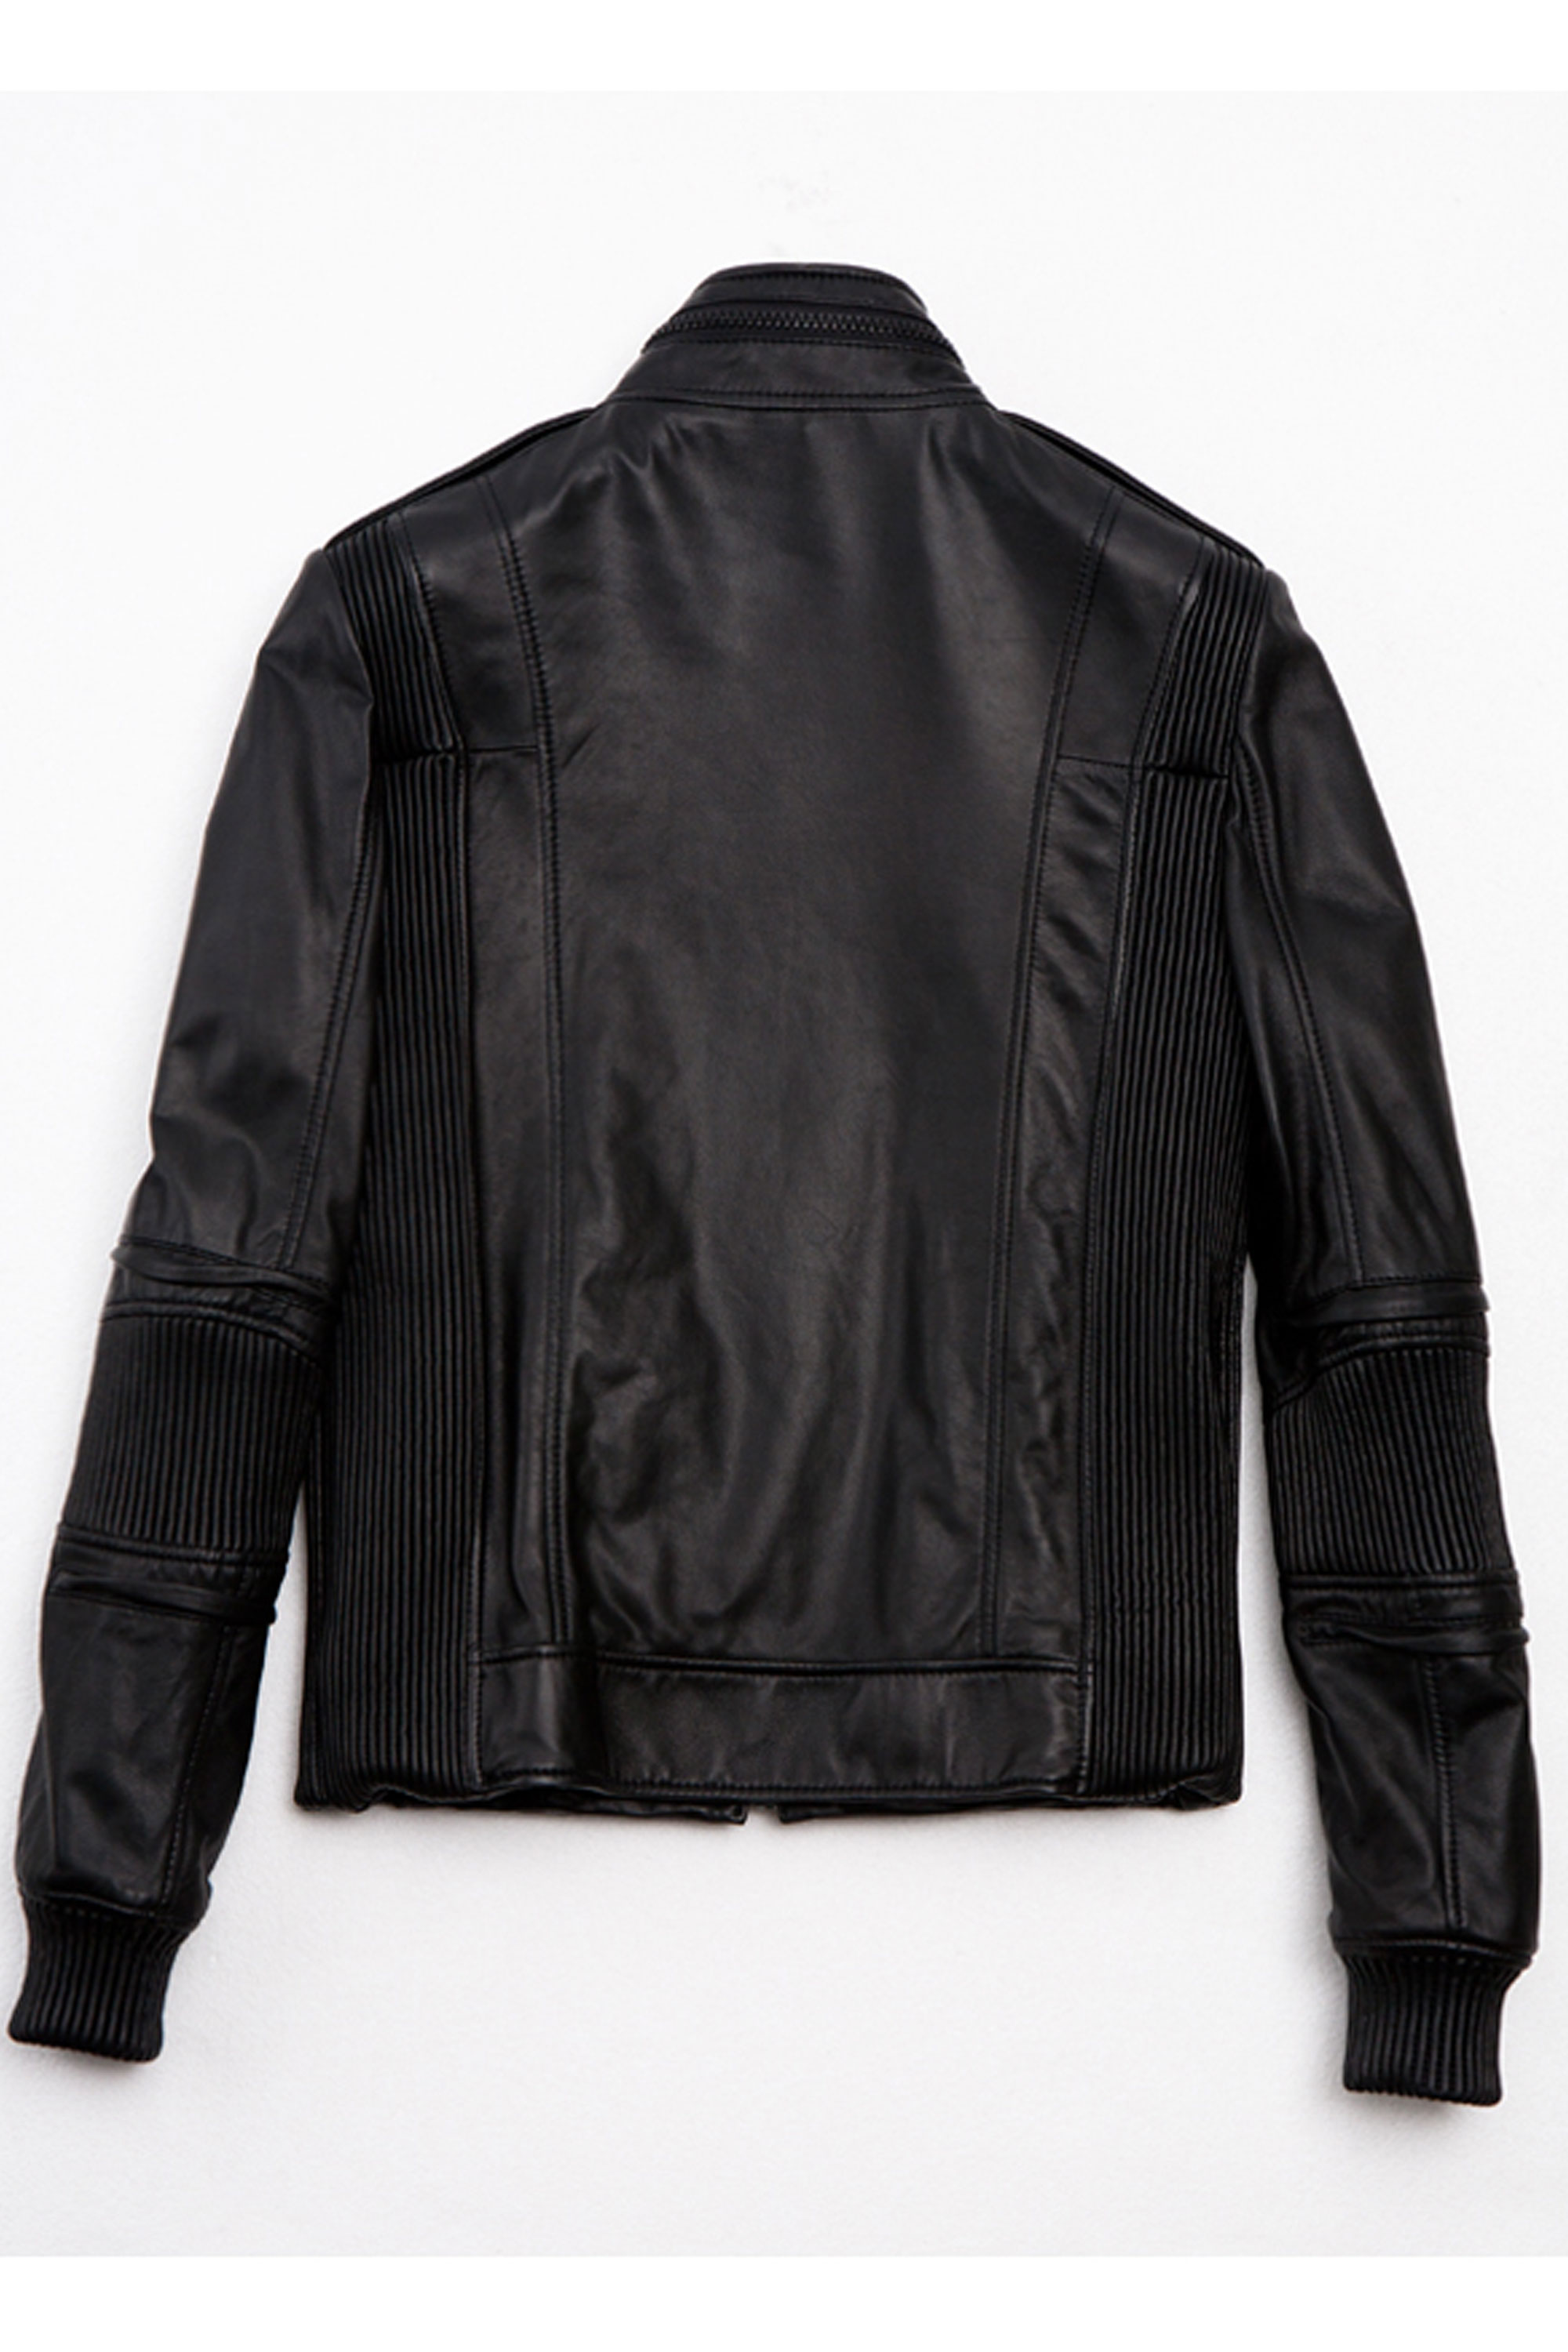 05F/W BIKER LEATHER JACKET